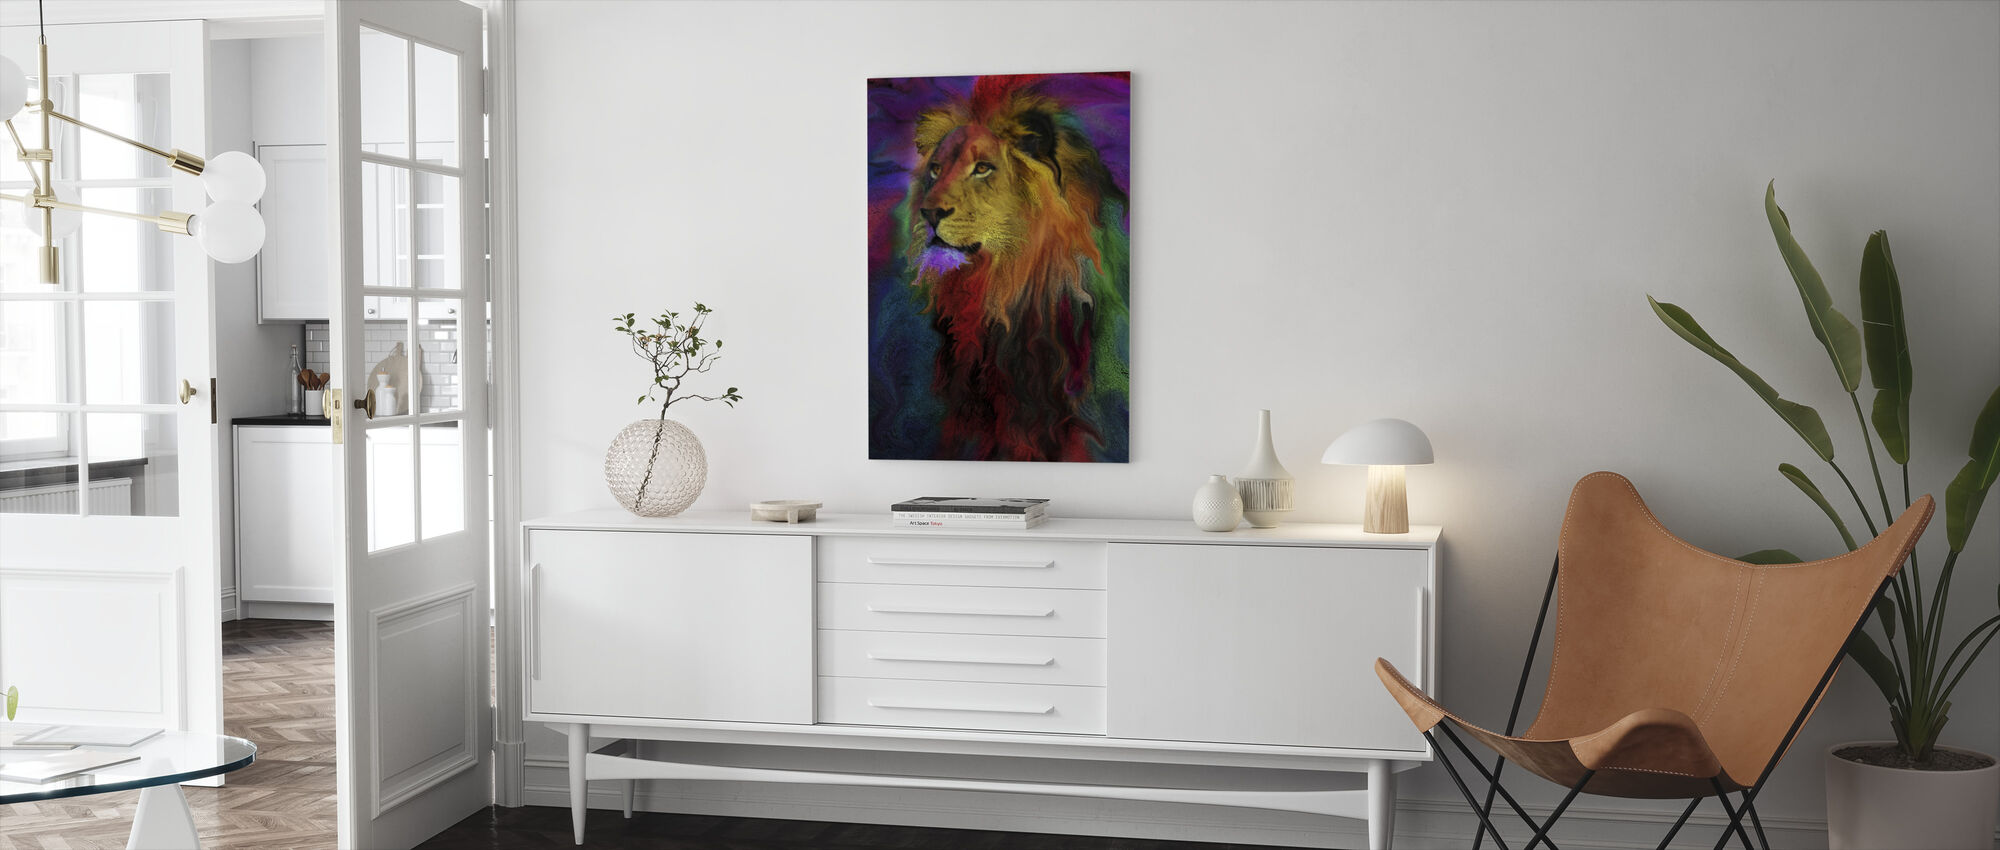 Rainbow Lion - Canvas print - Living Room